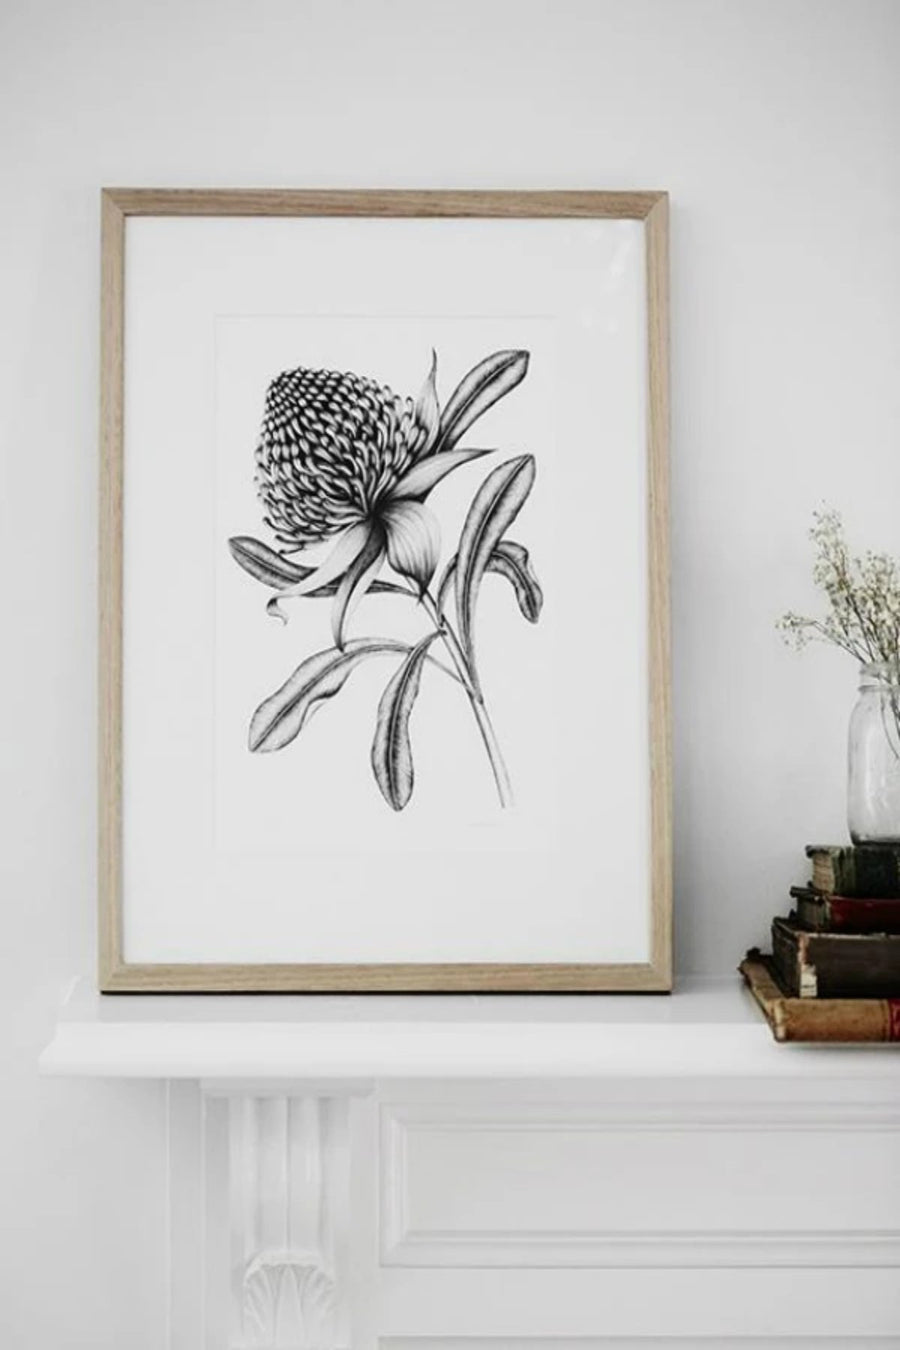 Illustration - Waratah Limited Edition - Shop Online At Mookah - mookah.com.au